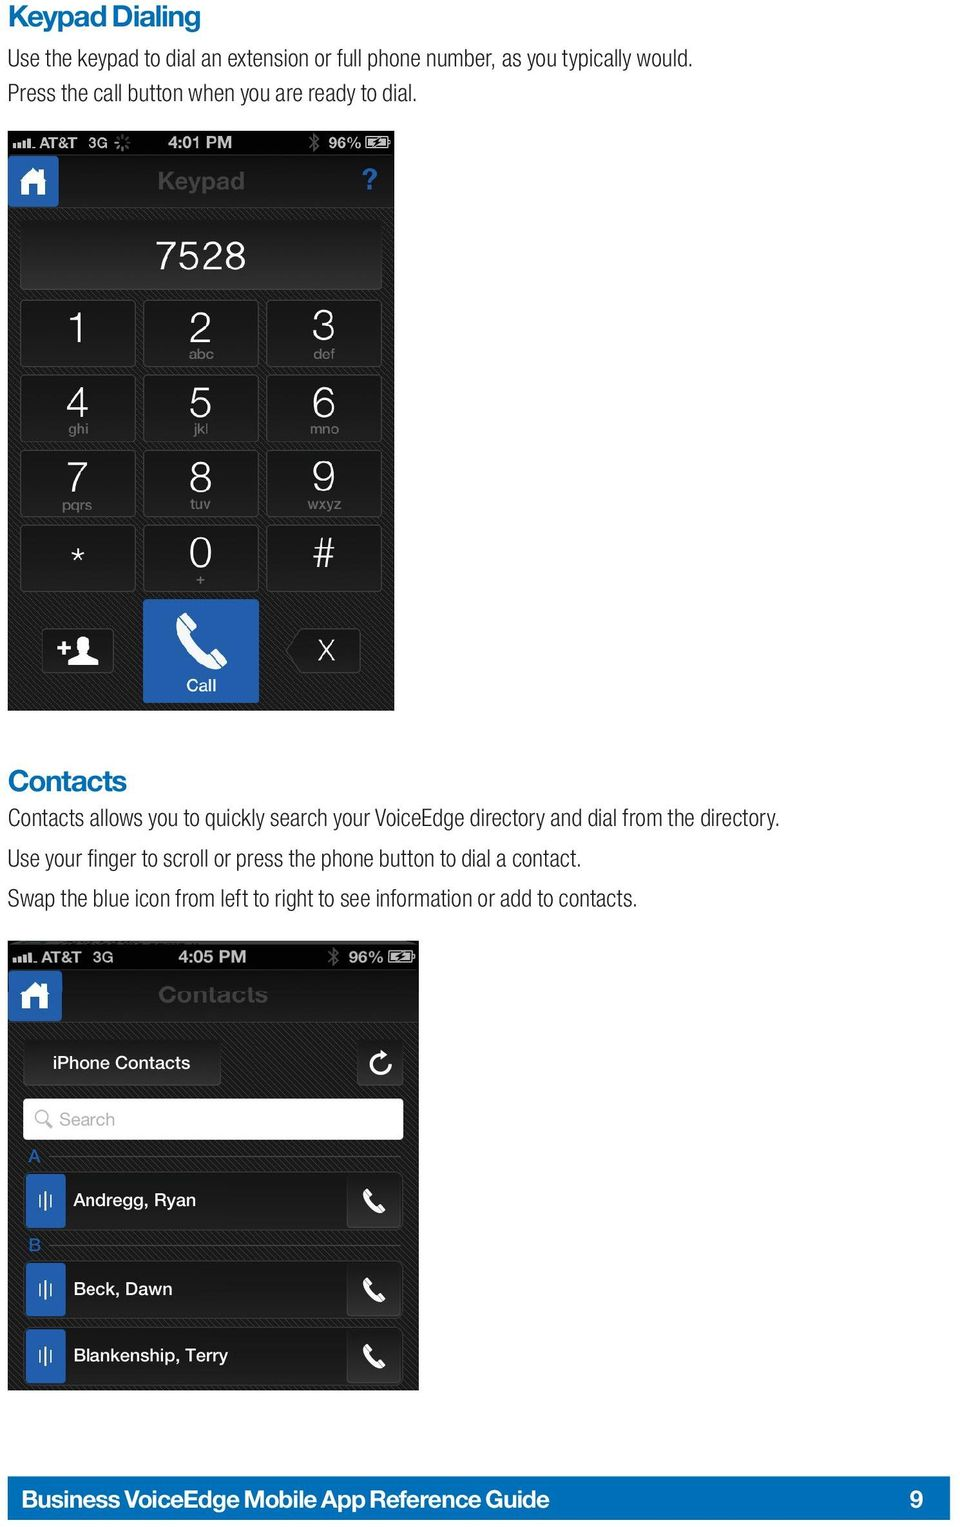 Contacts Contacts allows you to quickly search your VoiceEdge directory and dial from the directory.